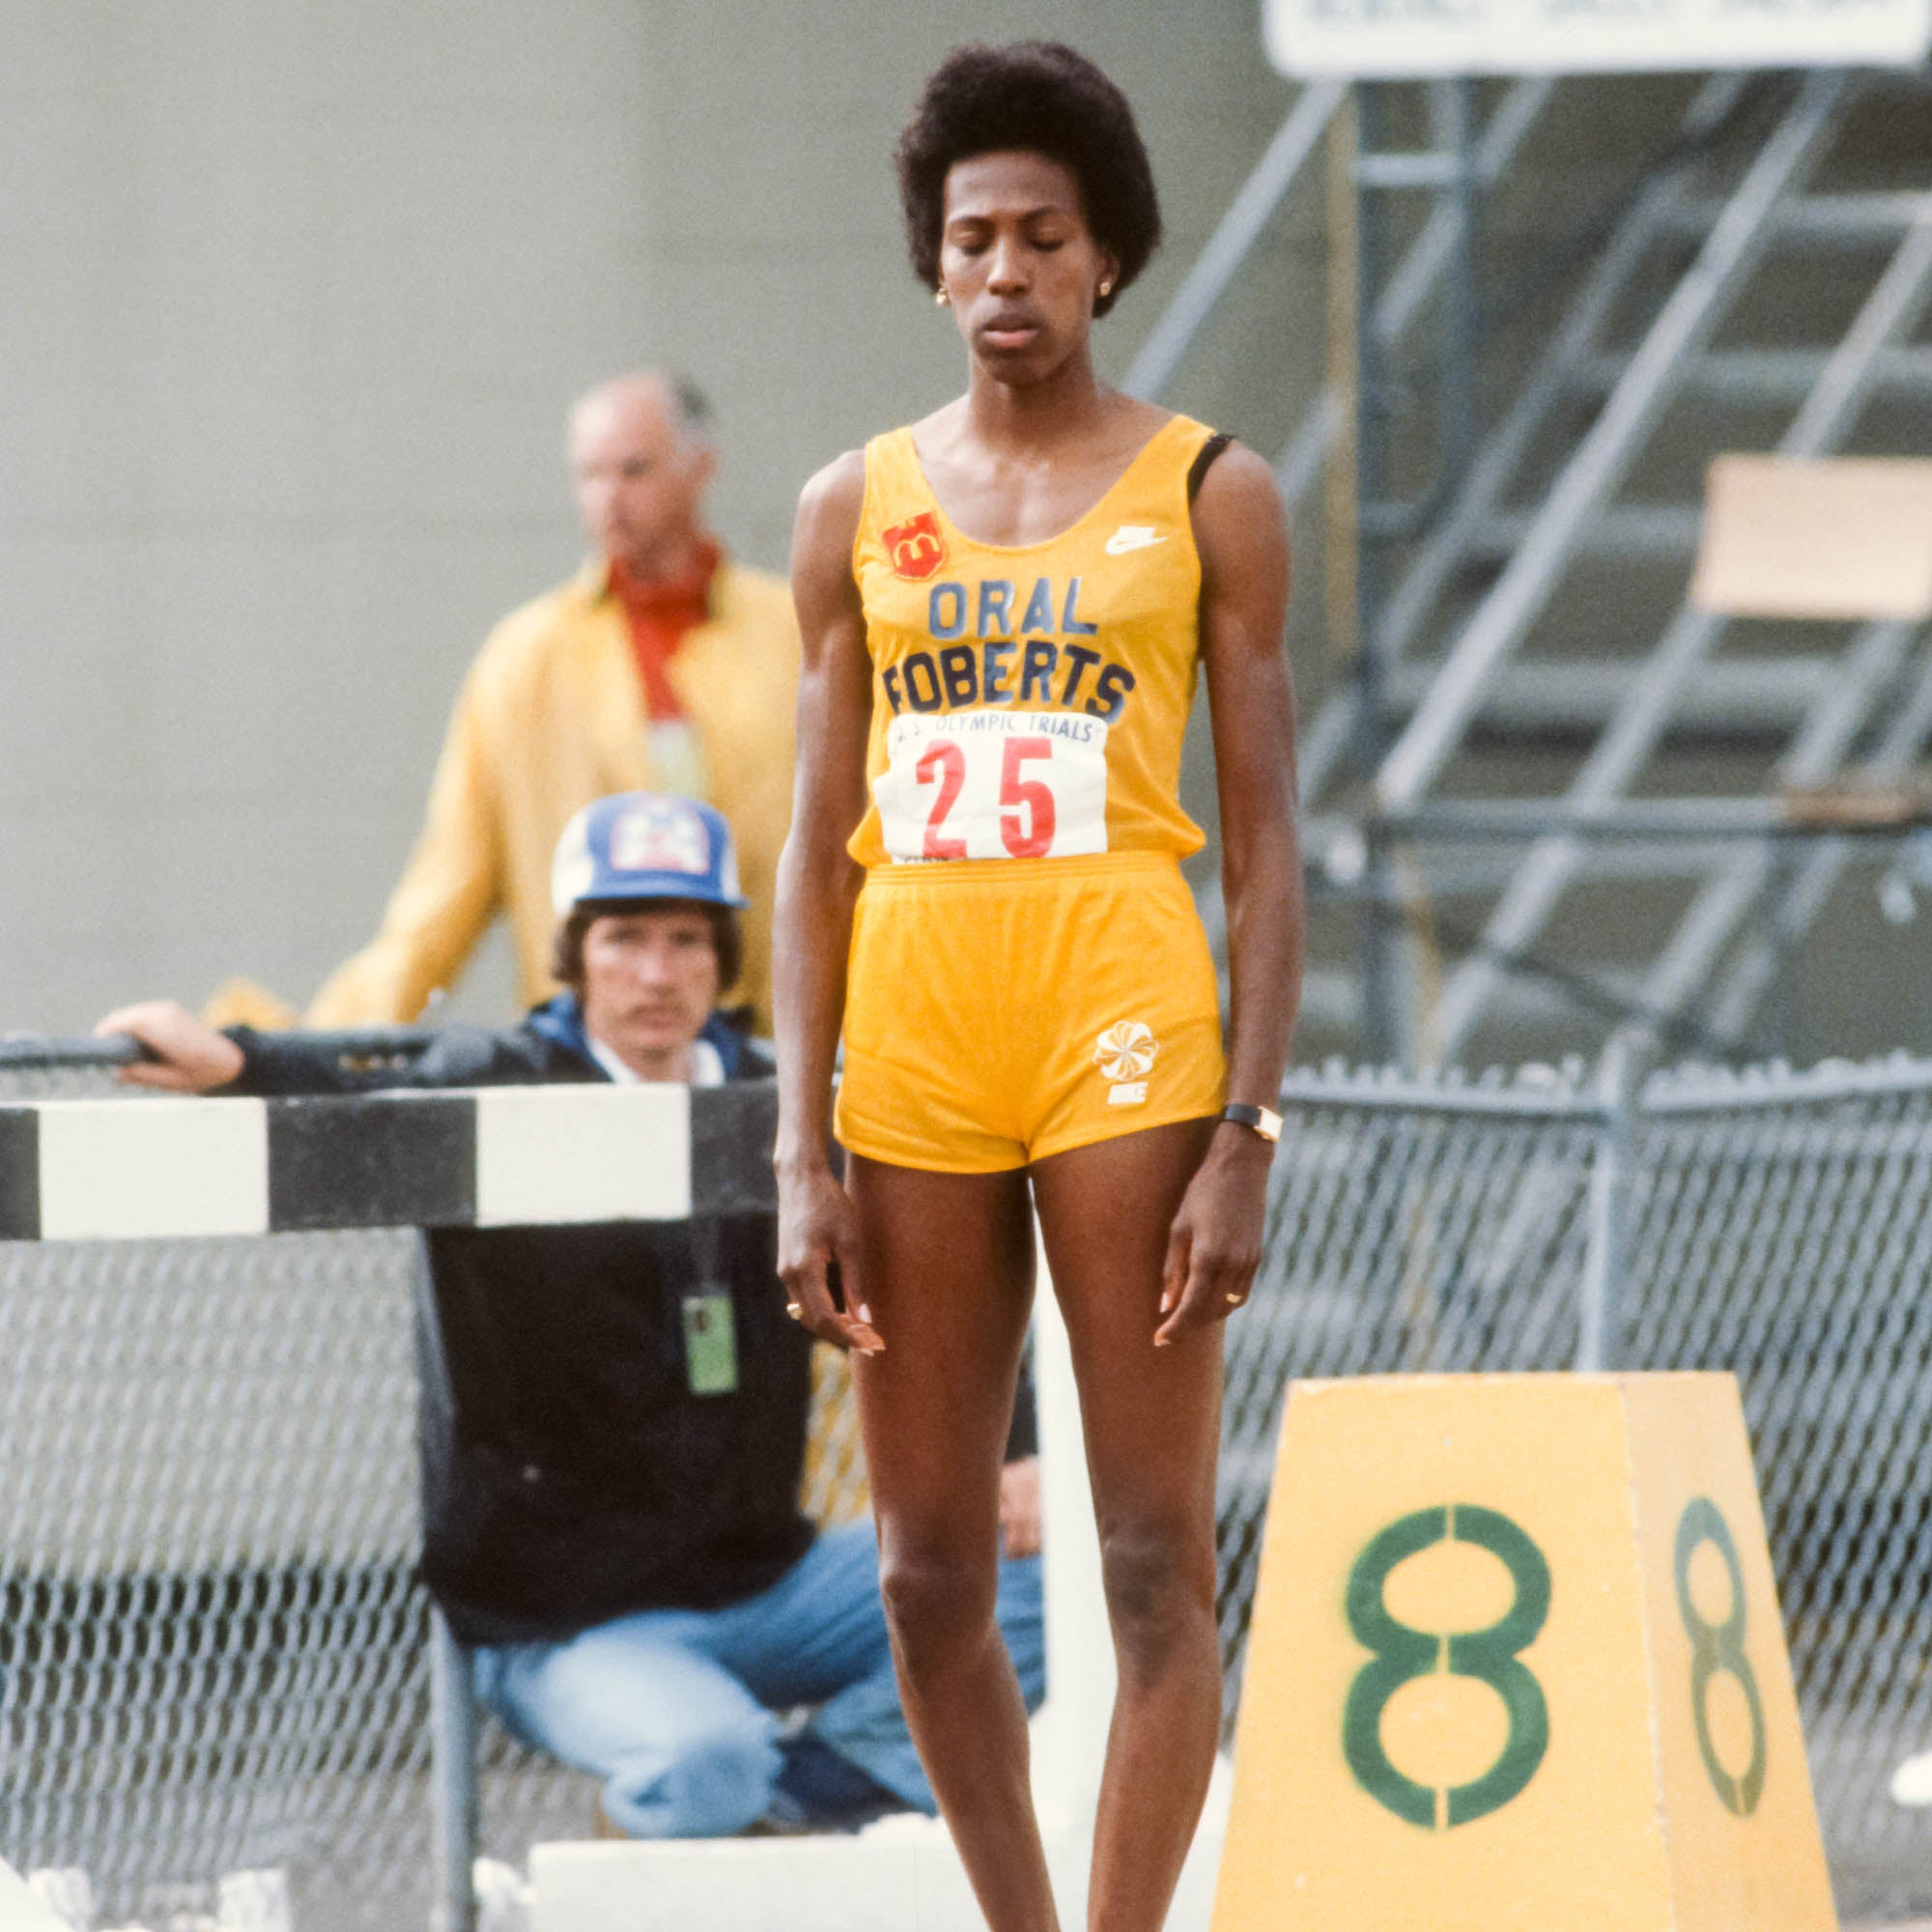 A tall woman in yellow stands alone on a wet track